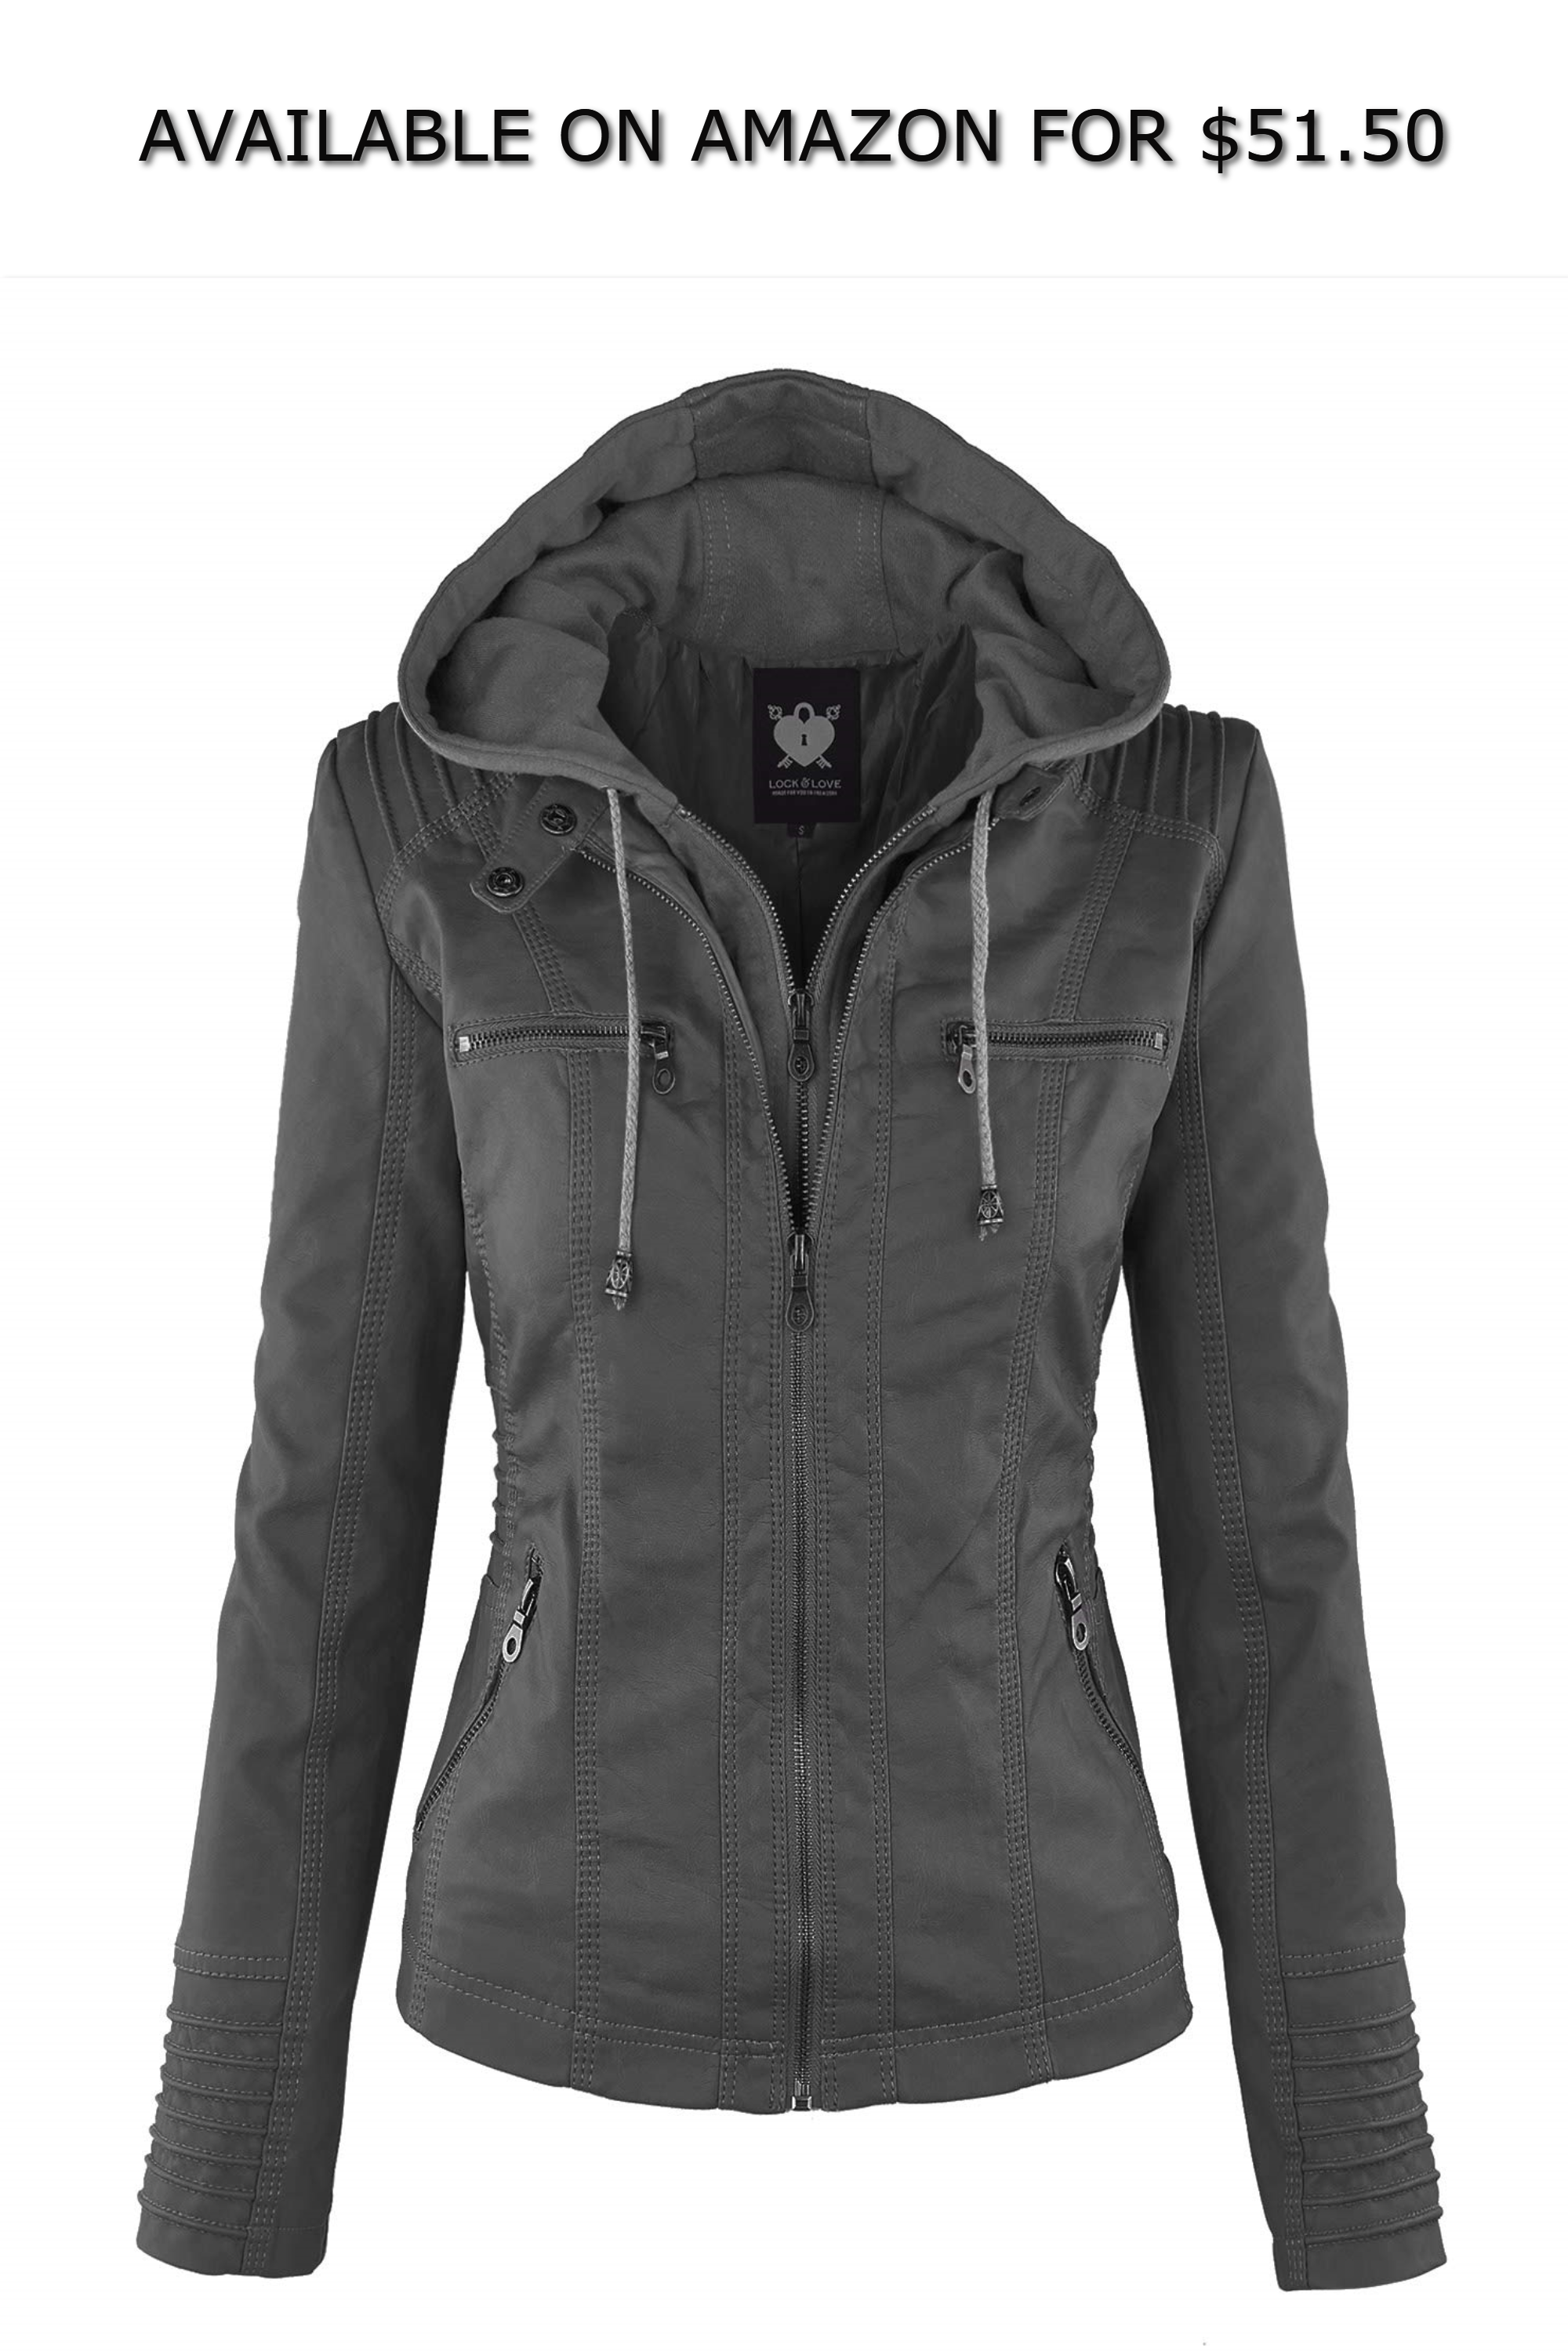 14963475aae4 Lock and Love LL WJC663 Womens Removable Hoodie Motorcyle Jacket XL Grey ◇  AVAILABLE ON AMAZON